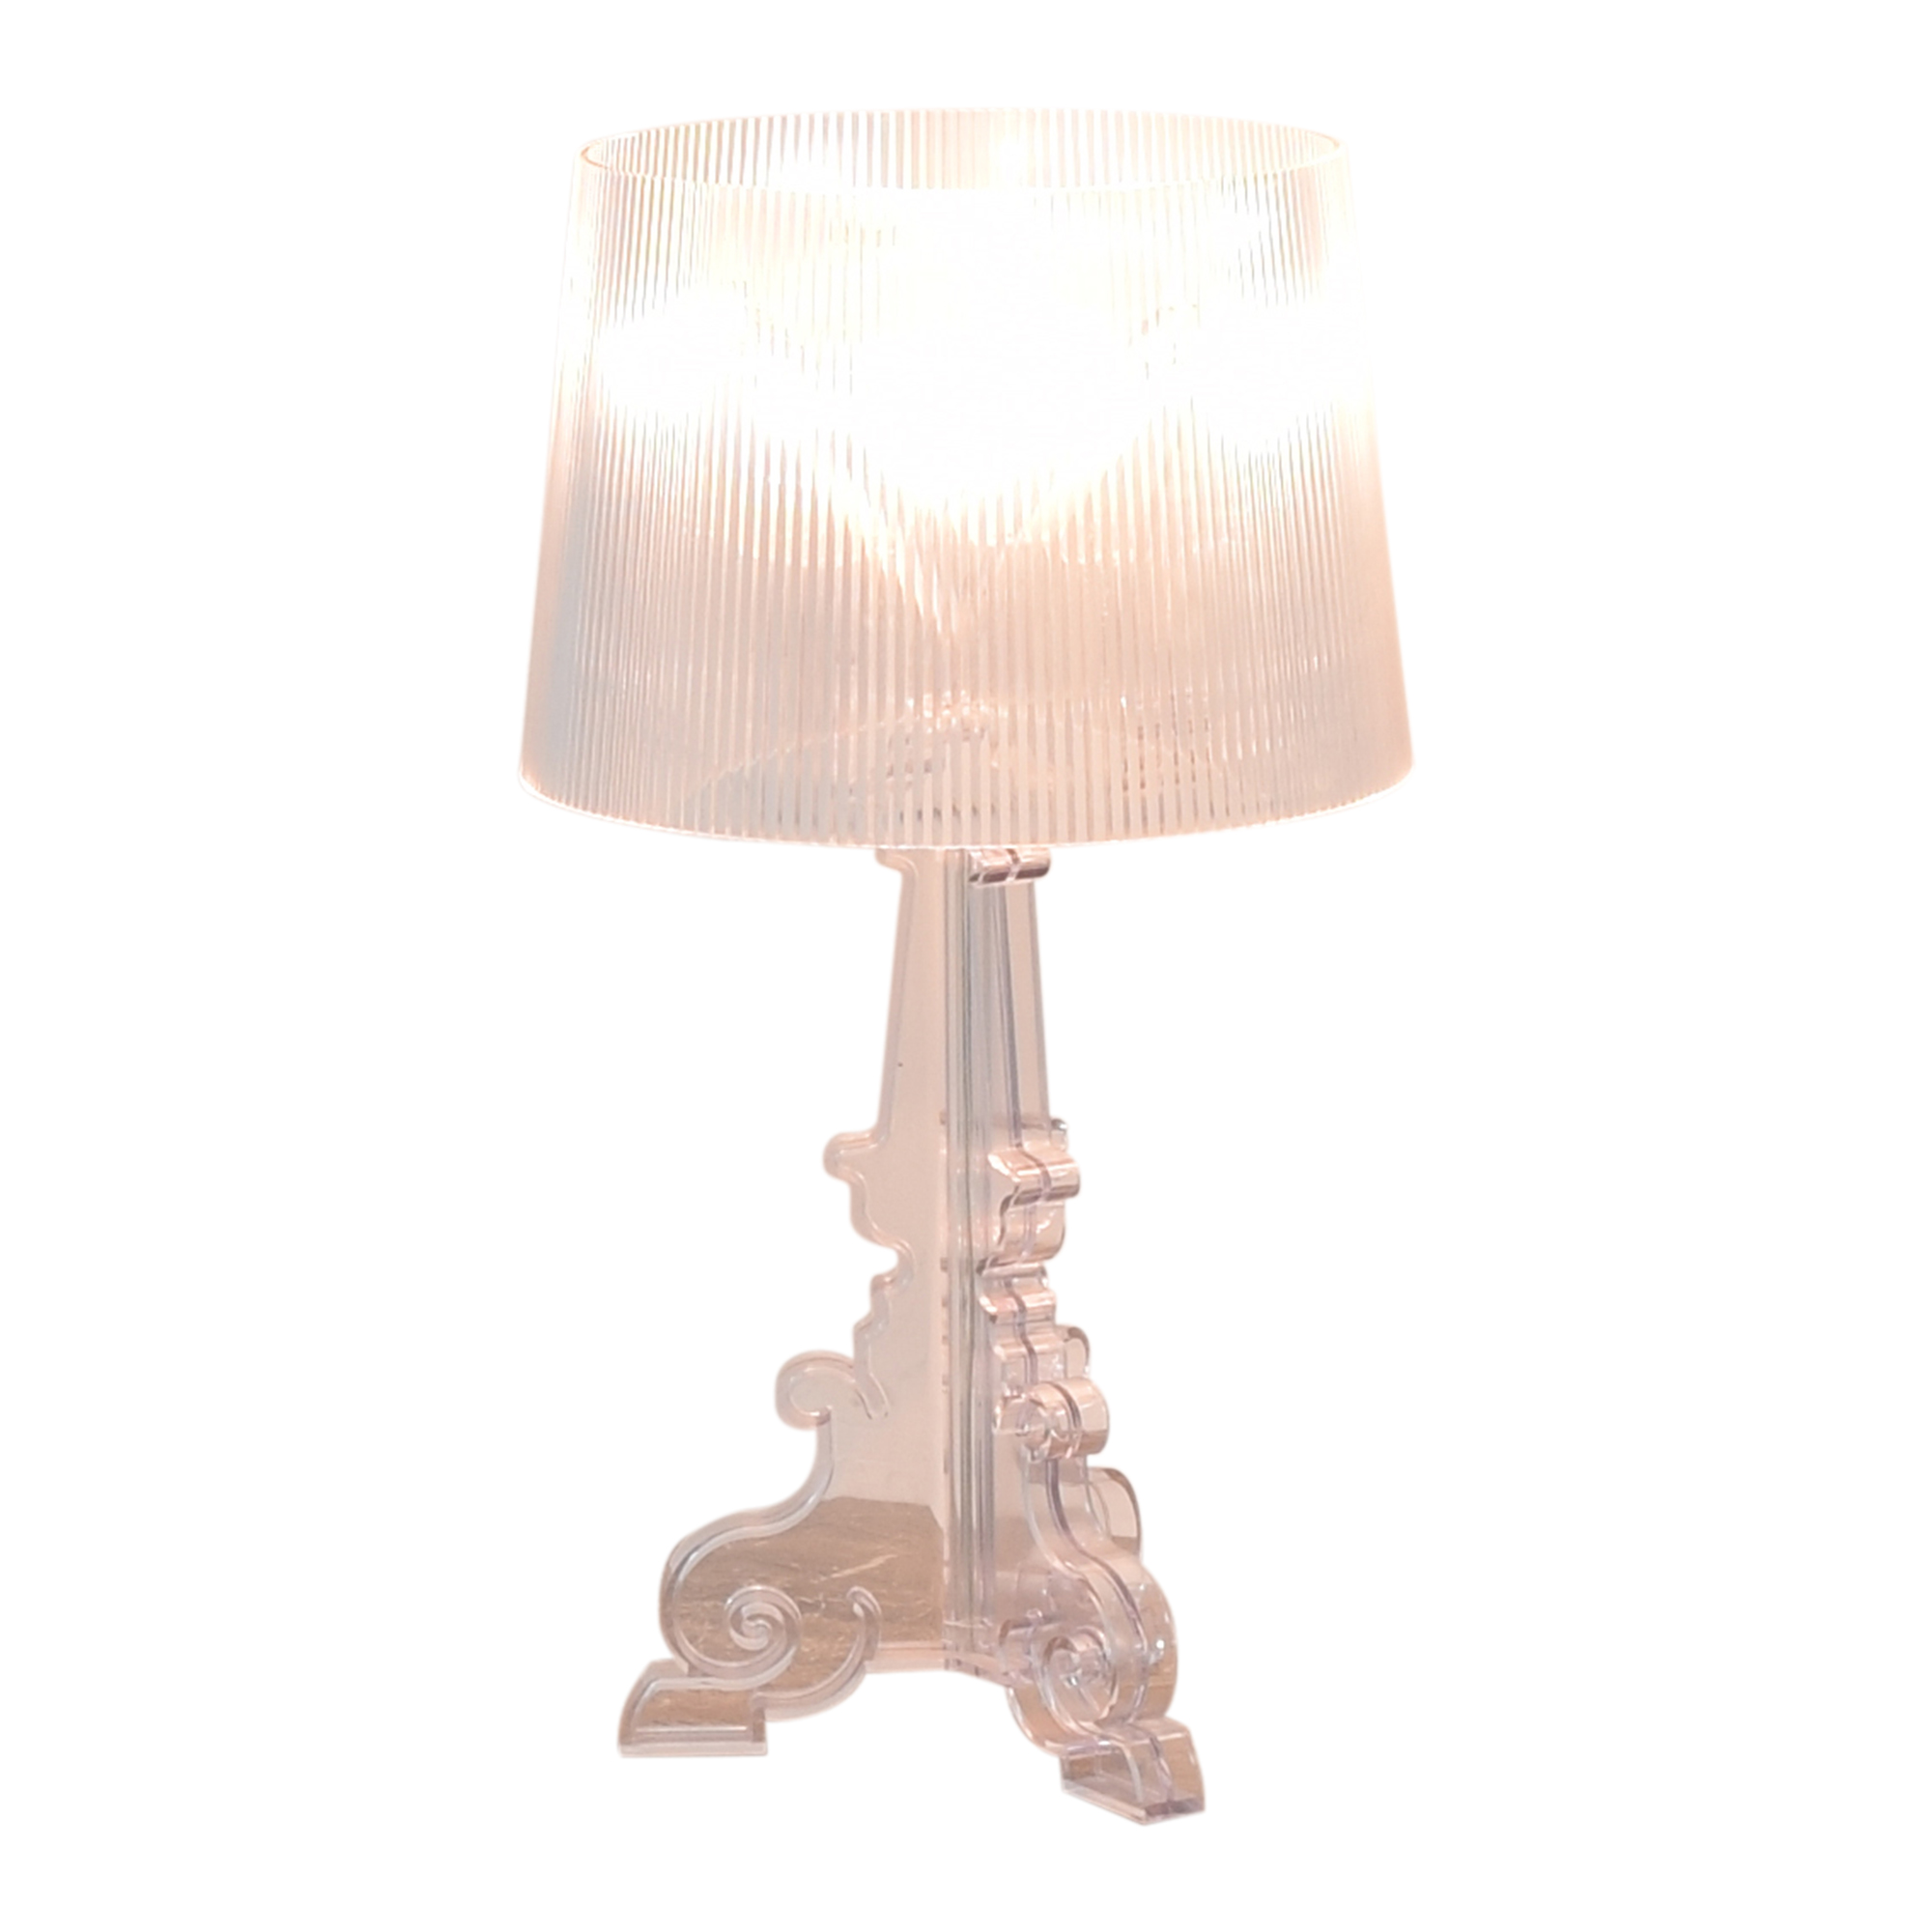 Kartell Kartell Bourgie Table Lamp second hand